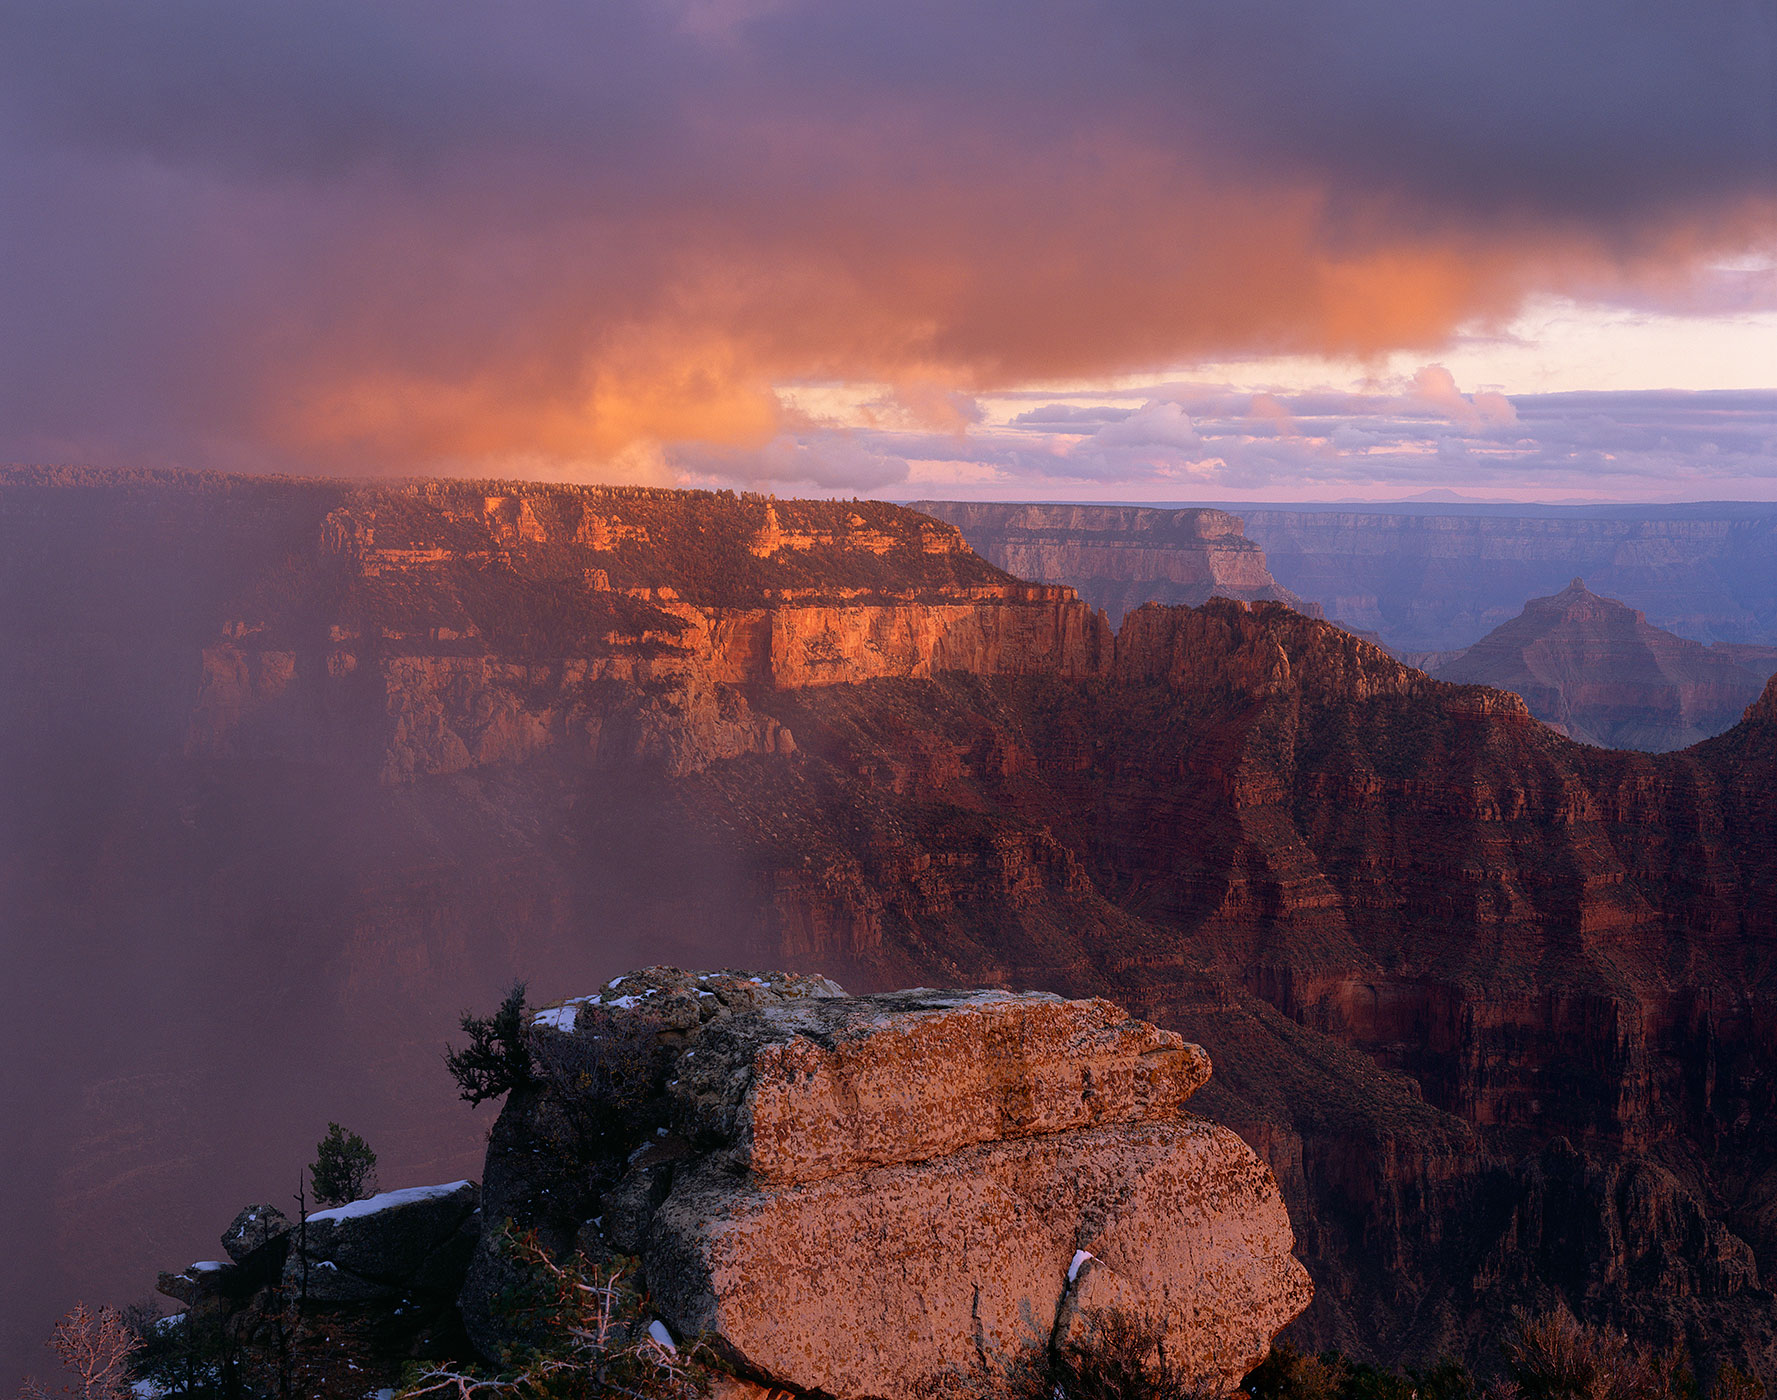 820 Storm Over Bright Angel, Grand Canyon National Park, Arizona